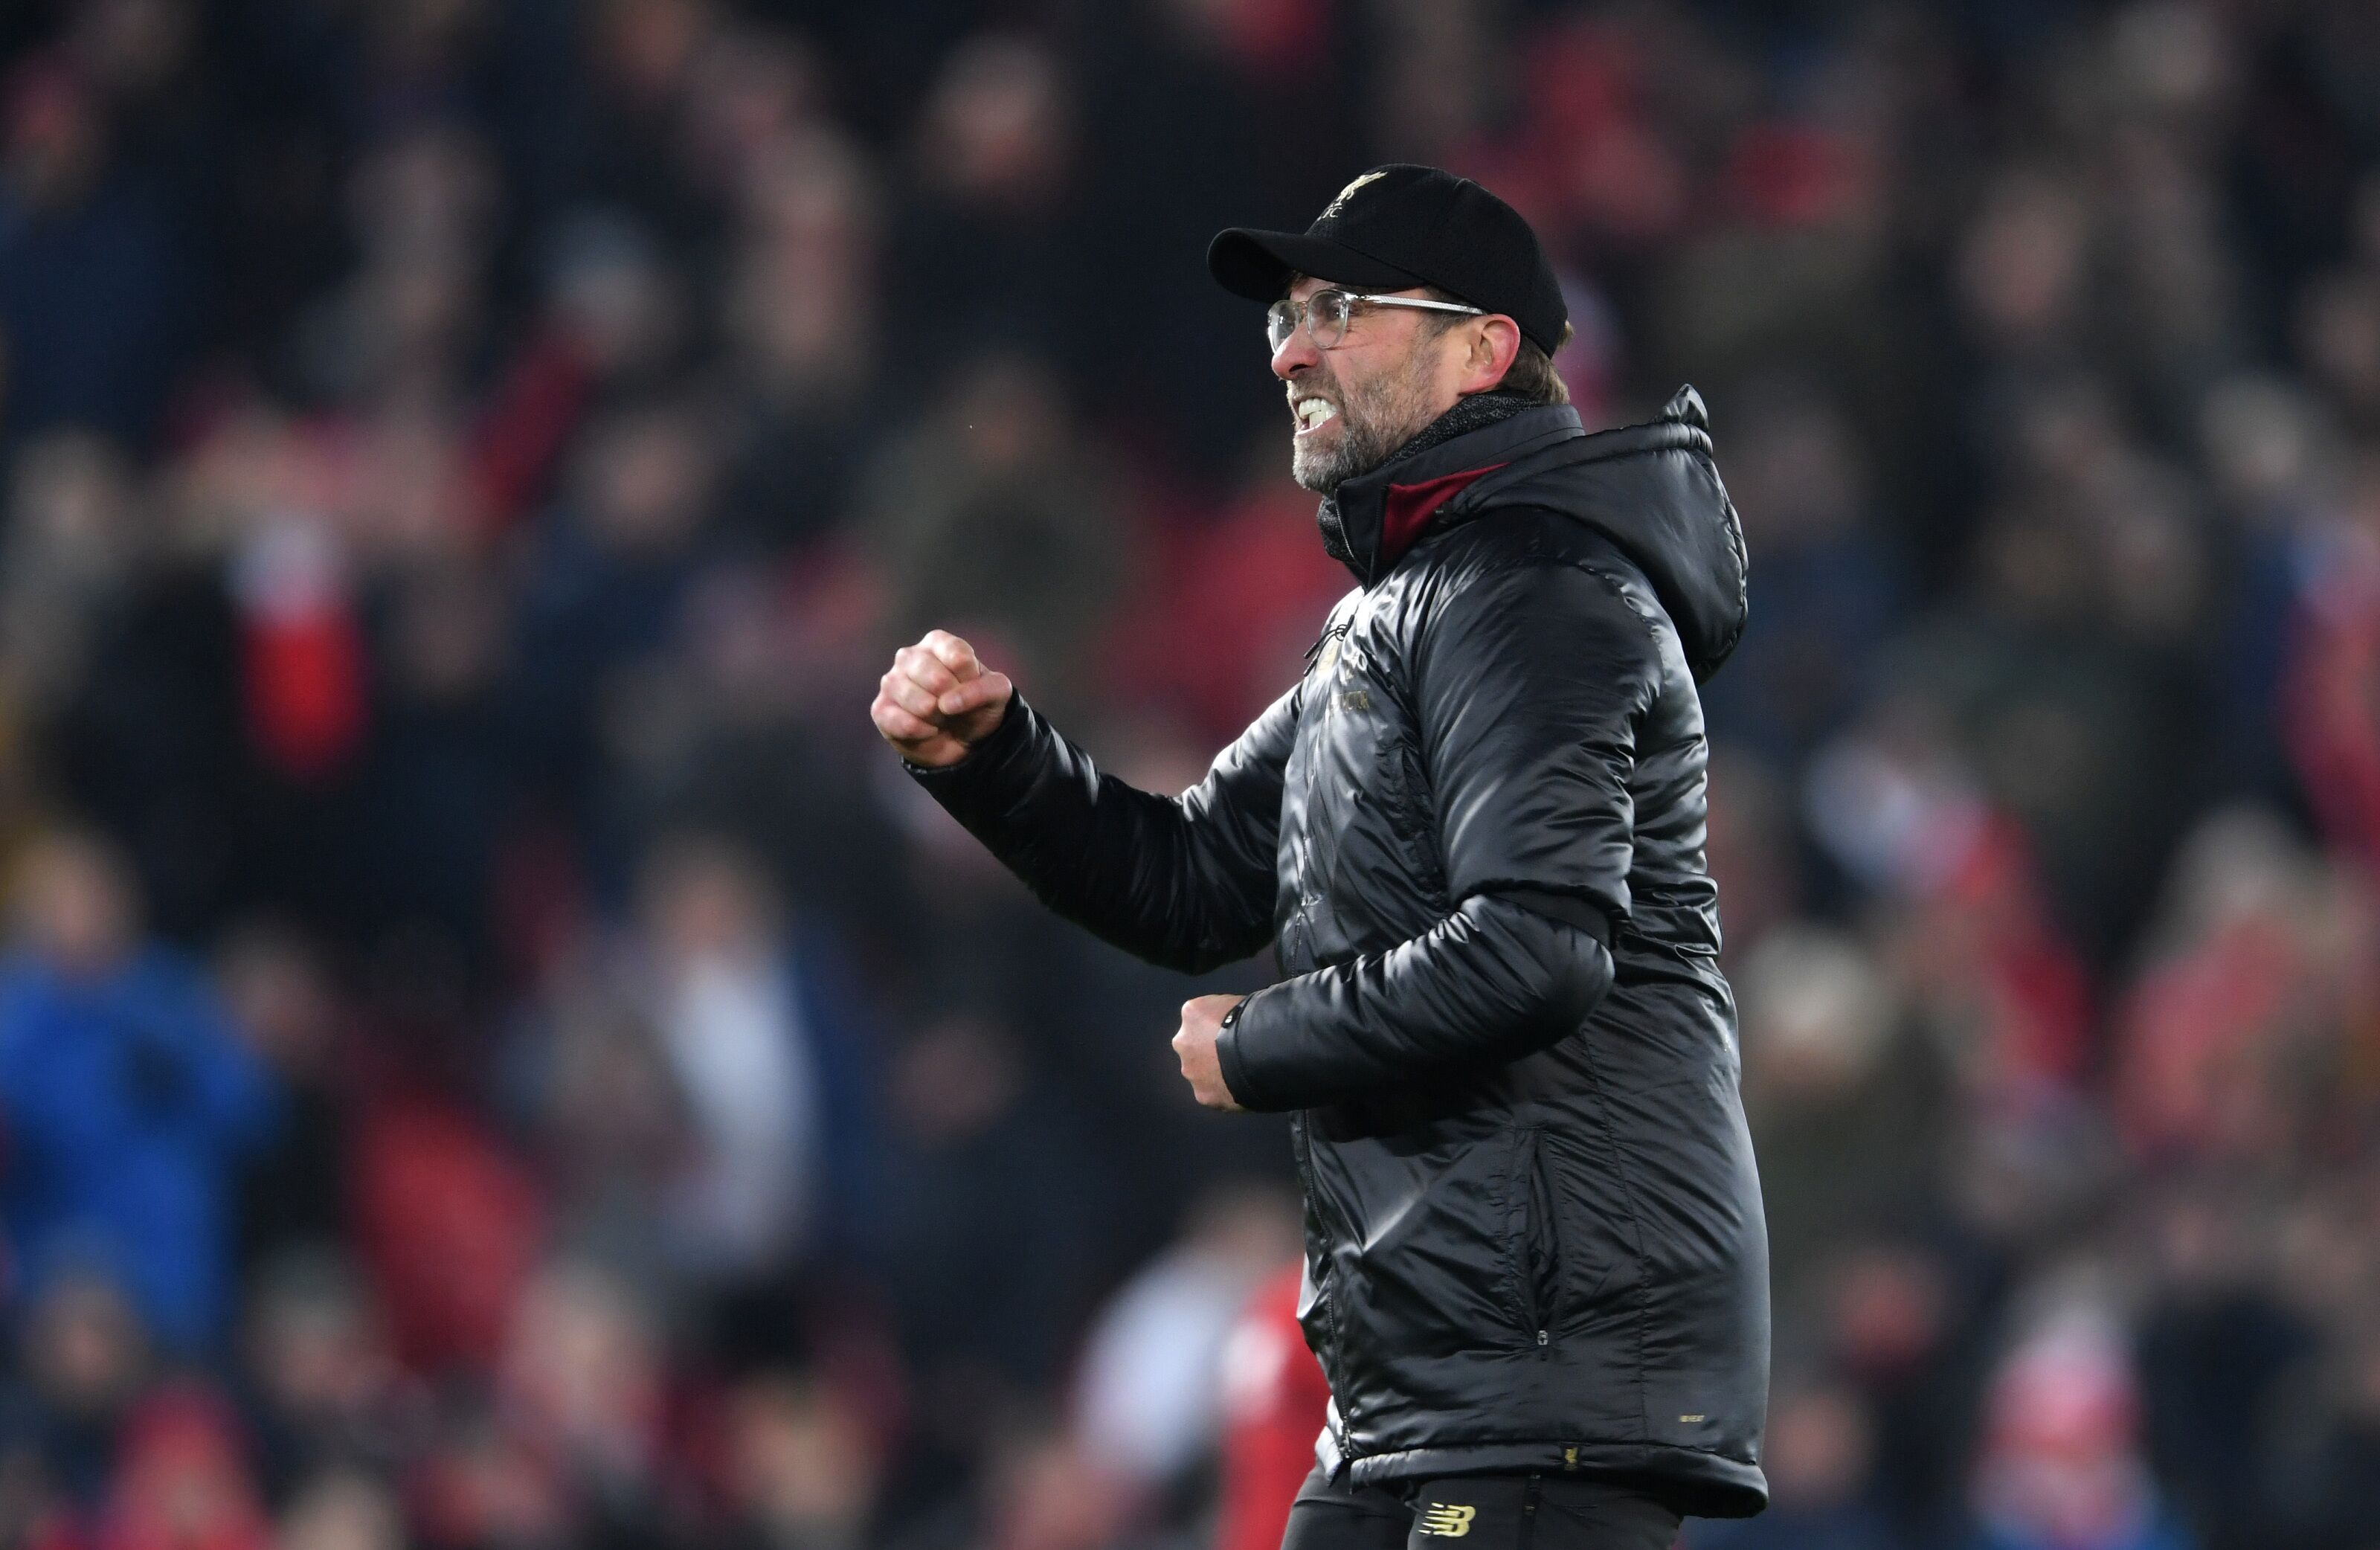 Jurgen Klopp turns down chance to add 12 goal winger to Liverpool squad